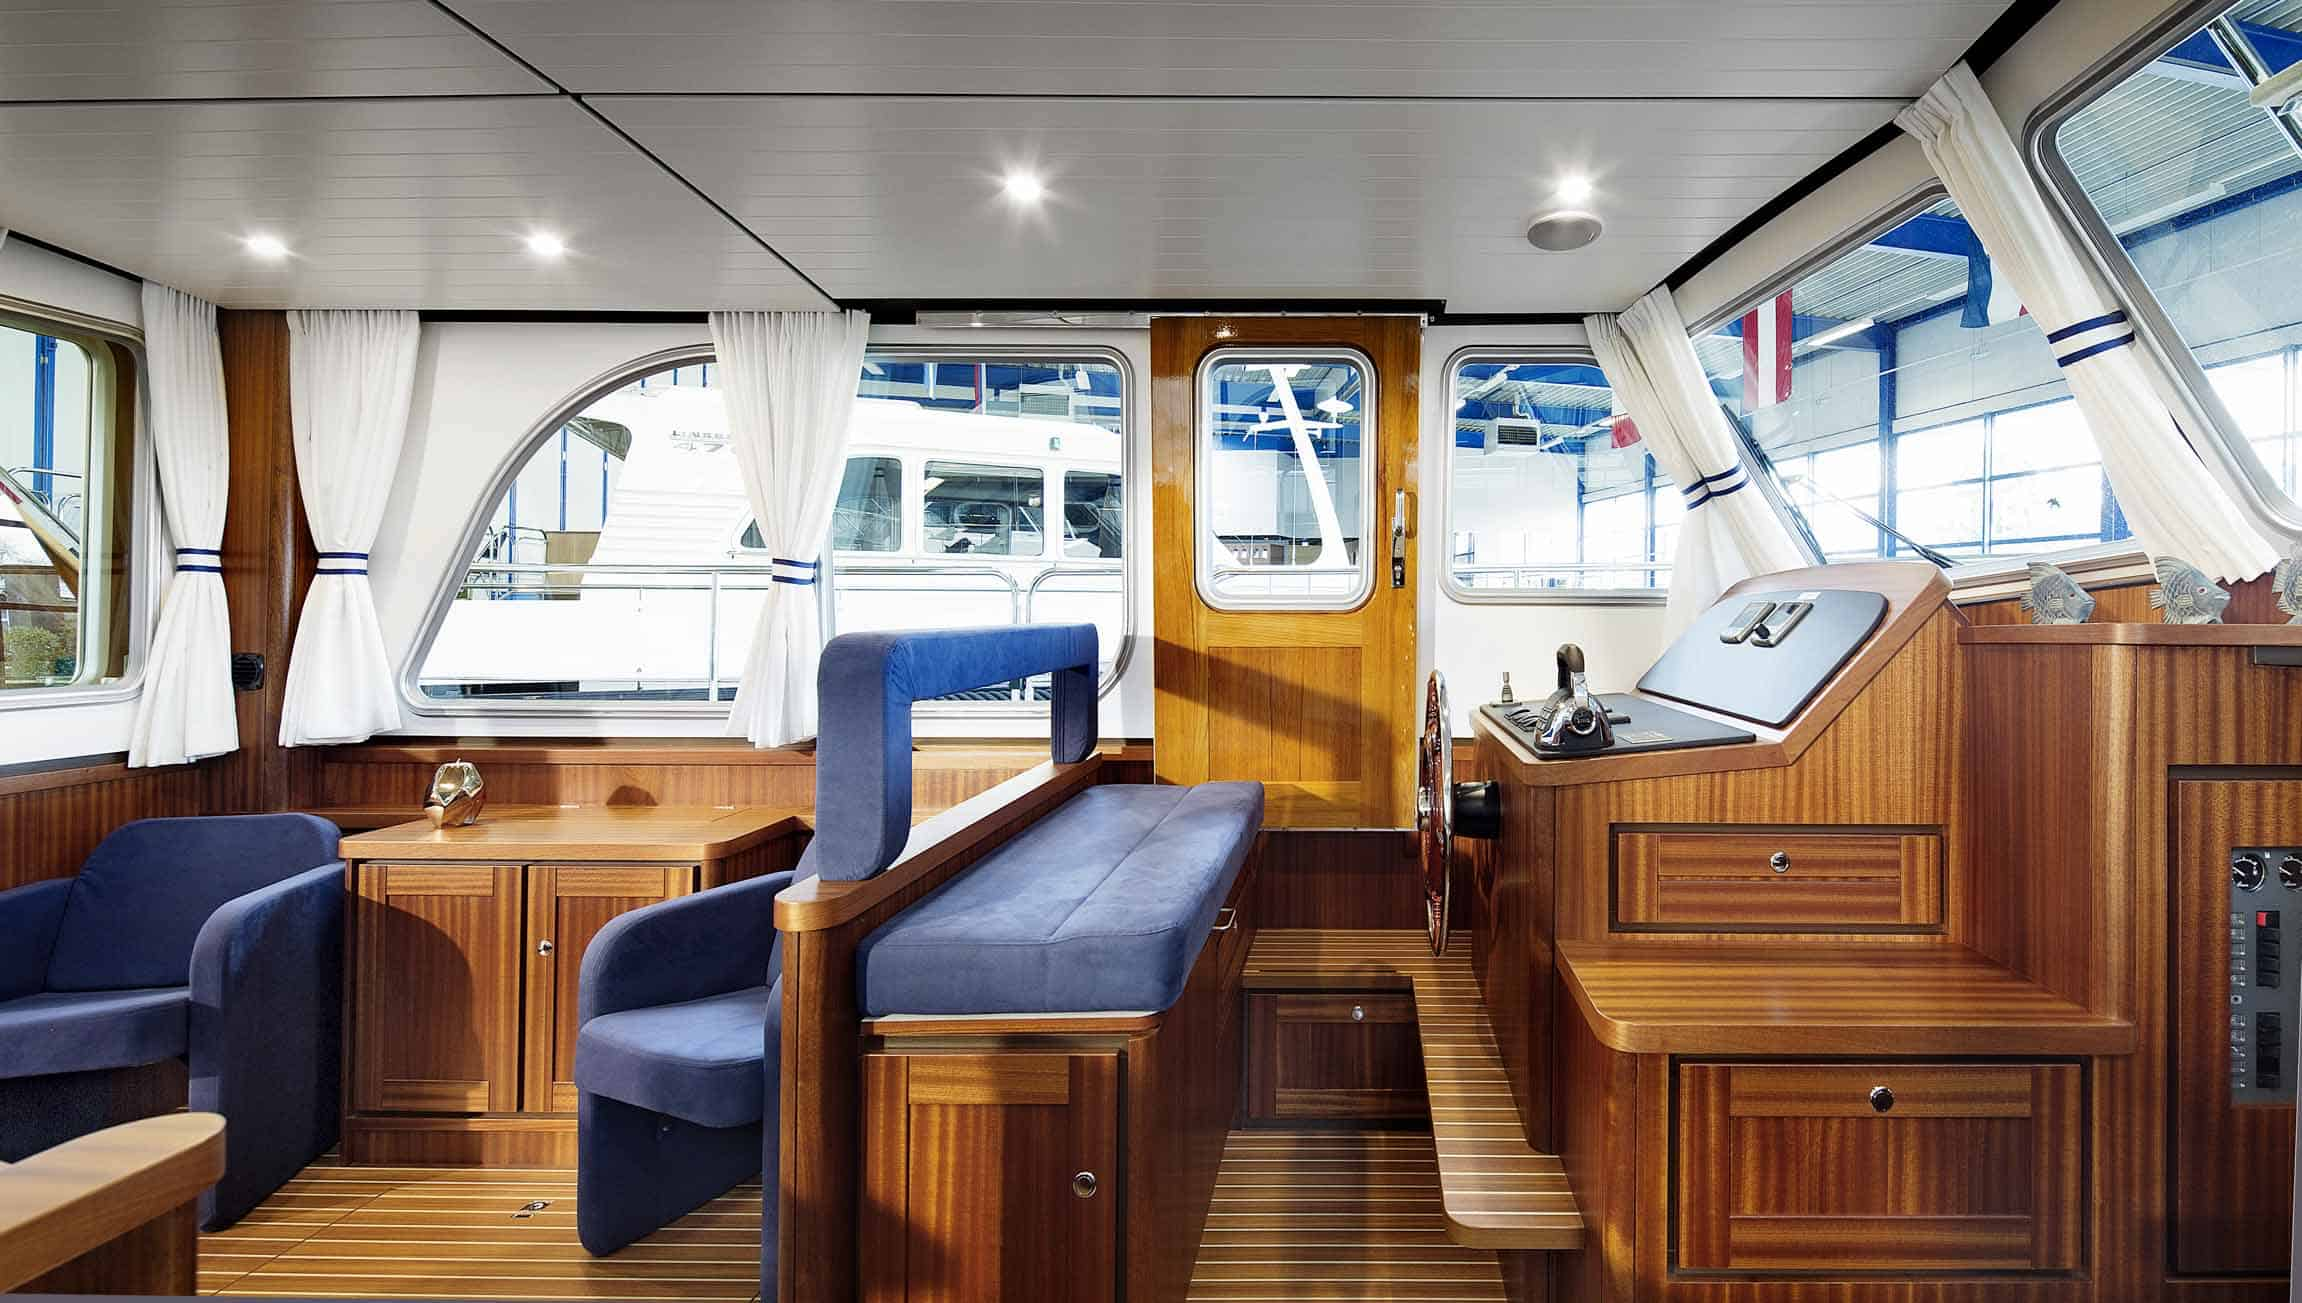 Linssen-Classic-Sturdy-410-Sedan-Deckbridge_251115-022